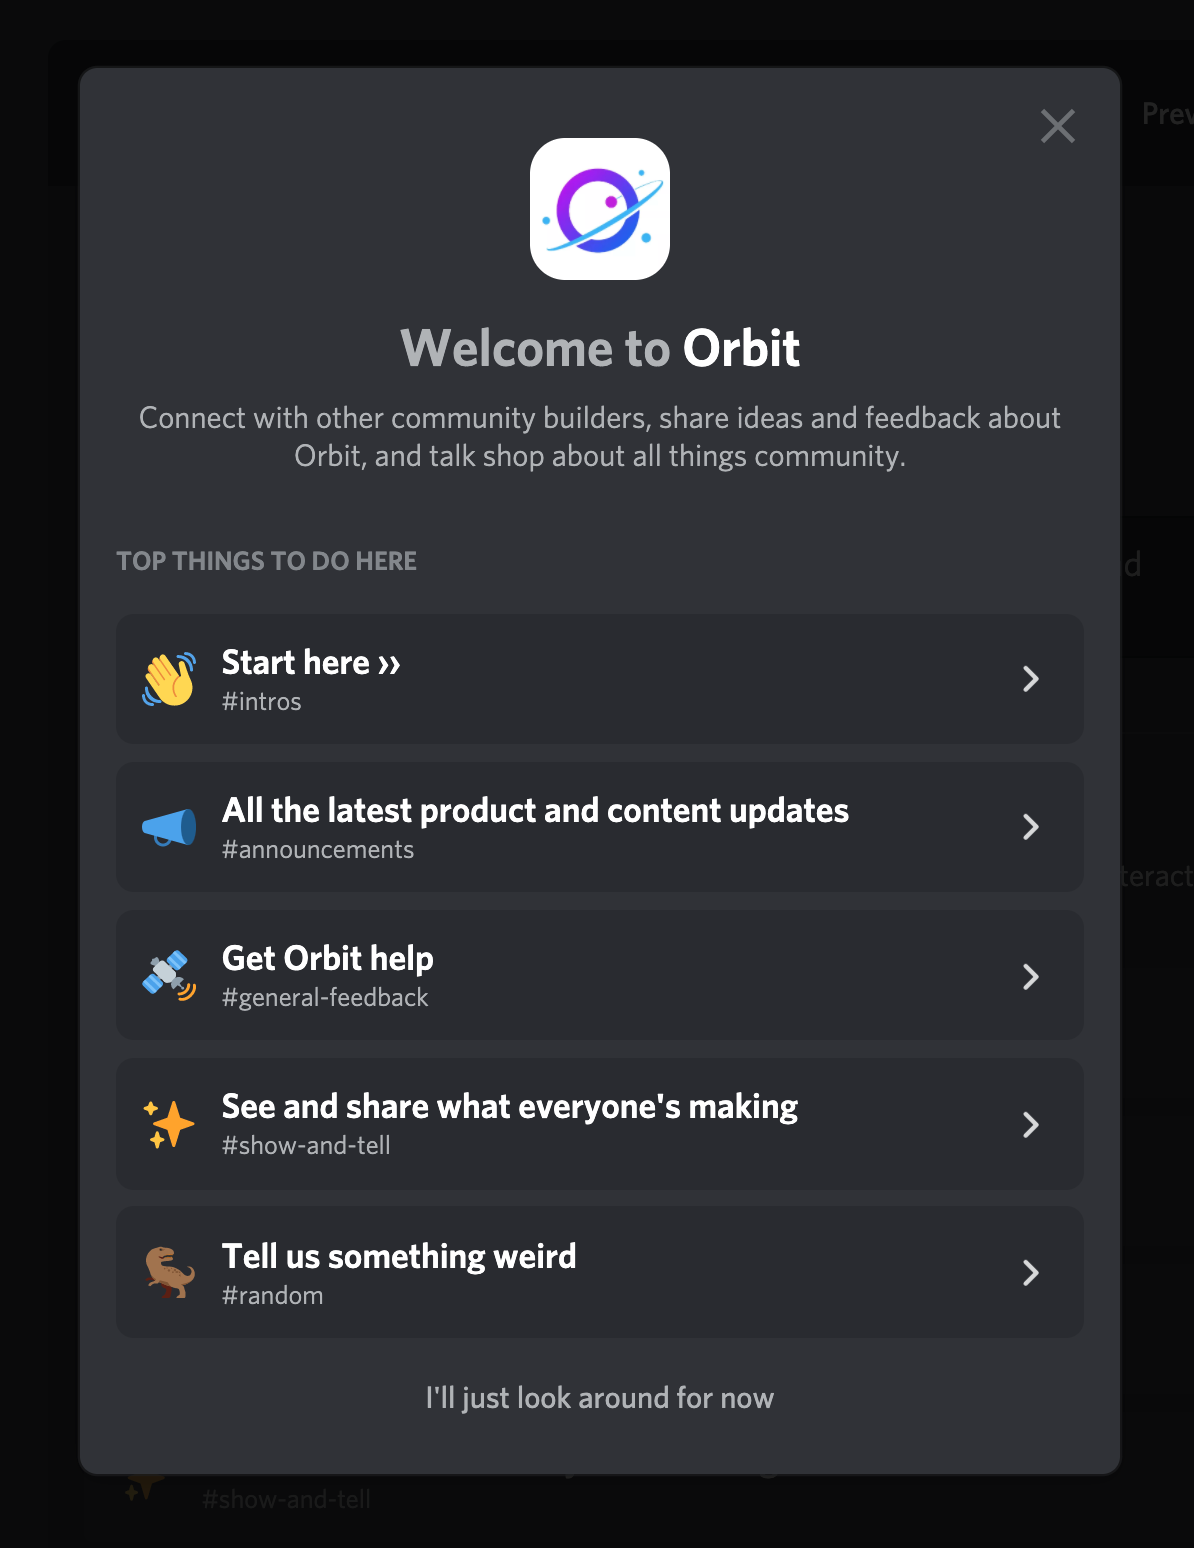 Screenshot of the Orbit Discord Welcome Message